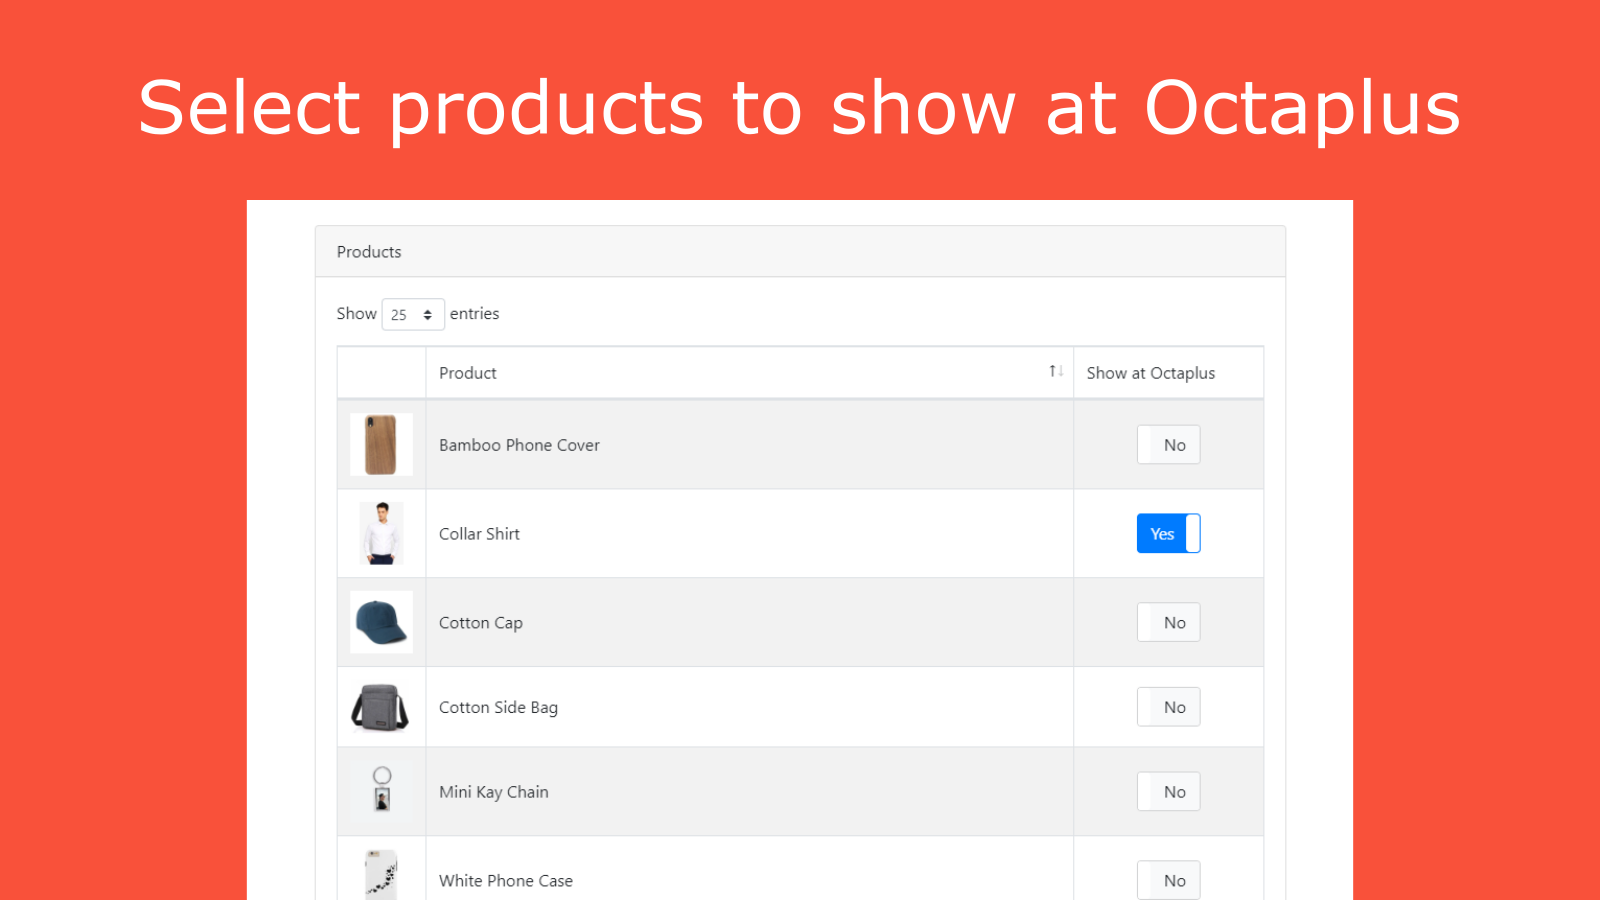 Select your products to show at Octaplus